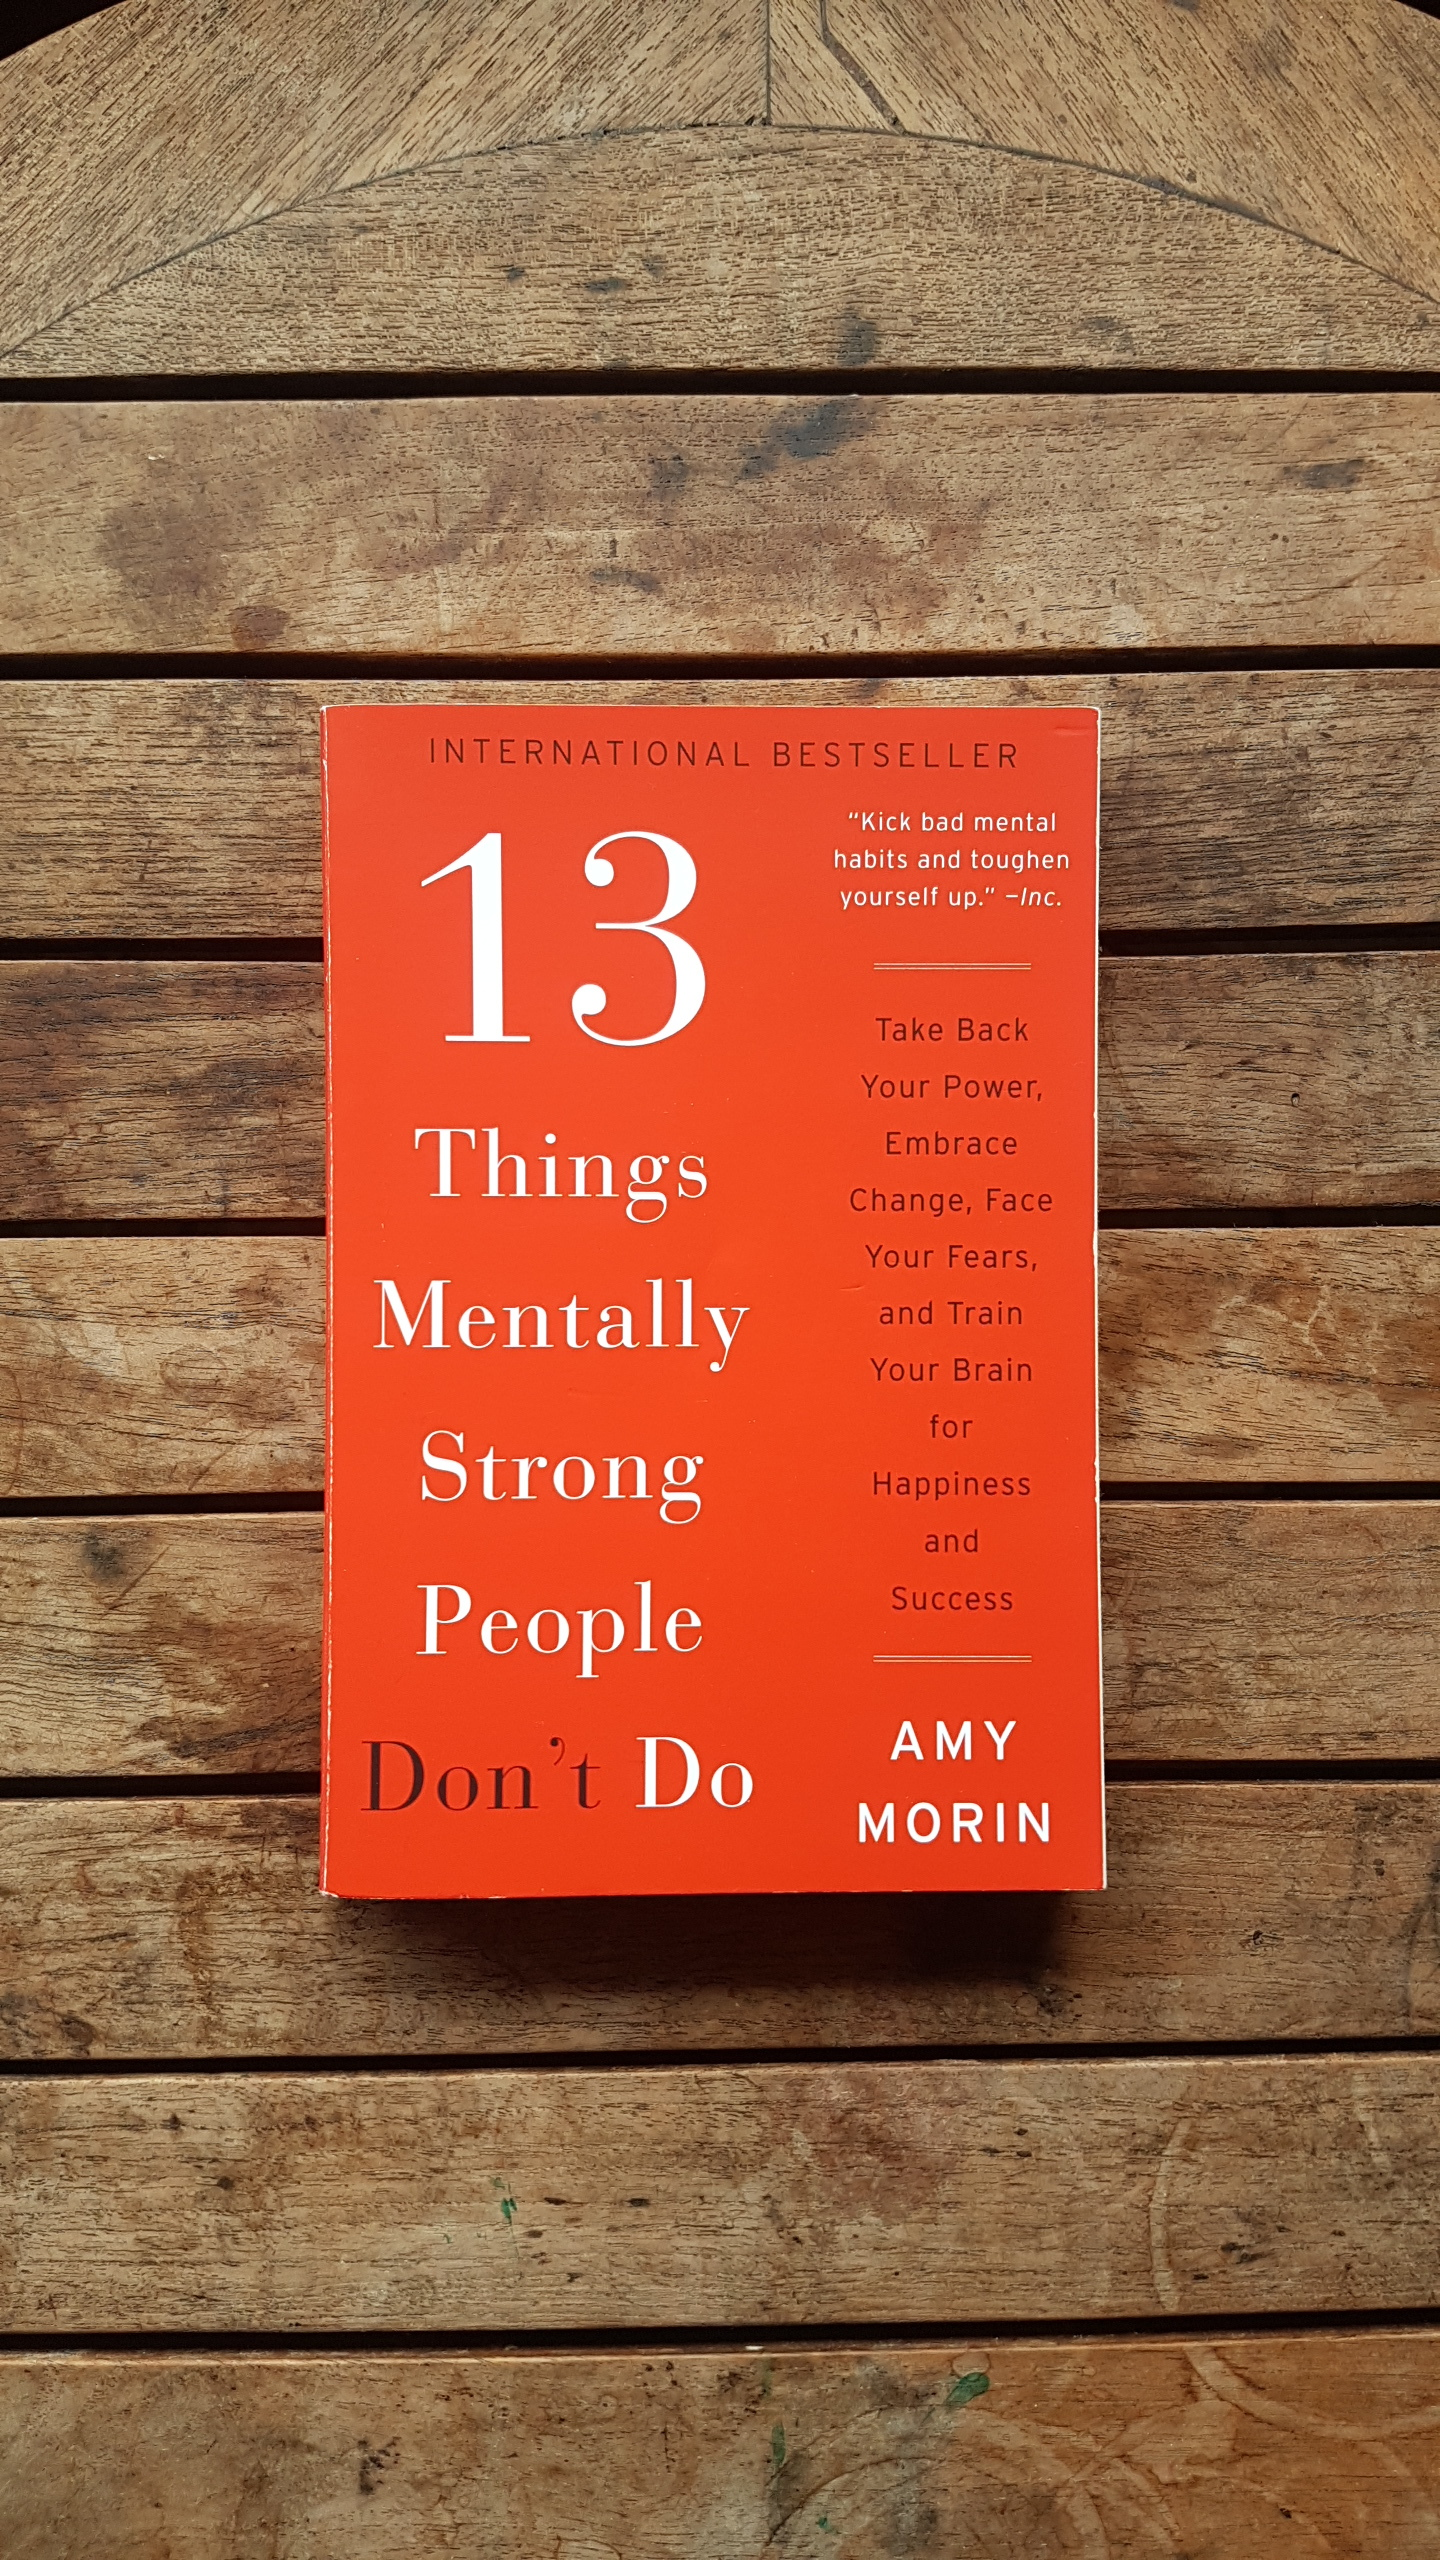 13 Things Mentally Strong People Don't Do: Take Back Your Power, Embrace Change, Face Your Fears, and Train Your Brain for Happiness and Success   by Amy Morin